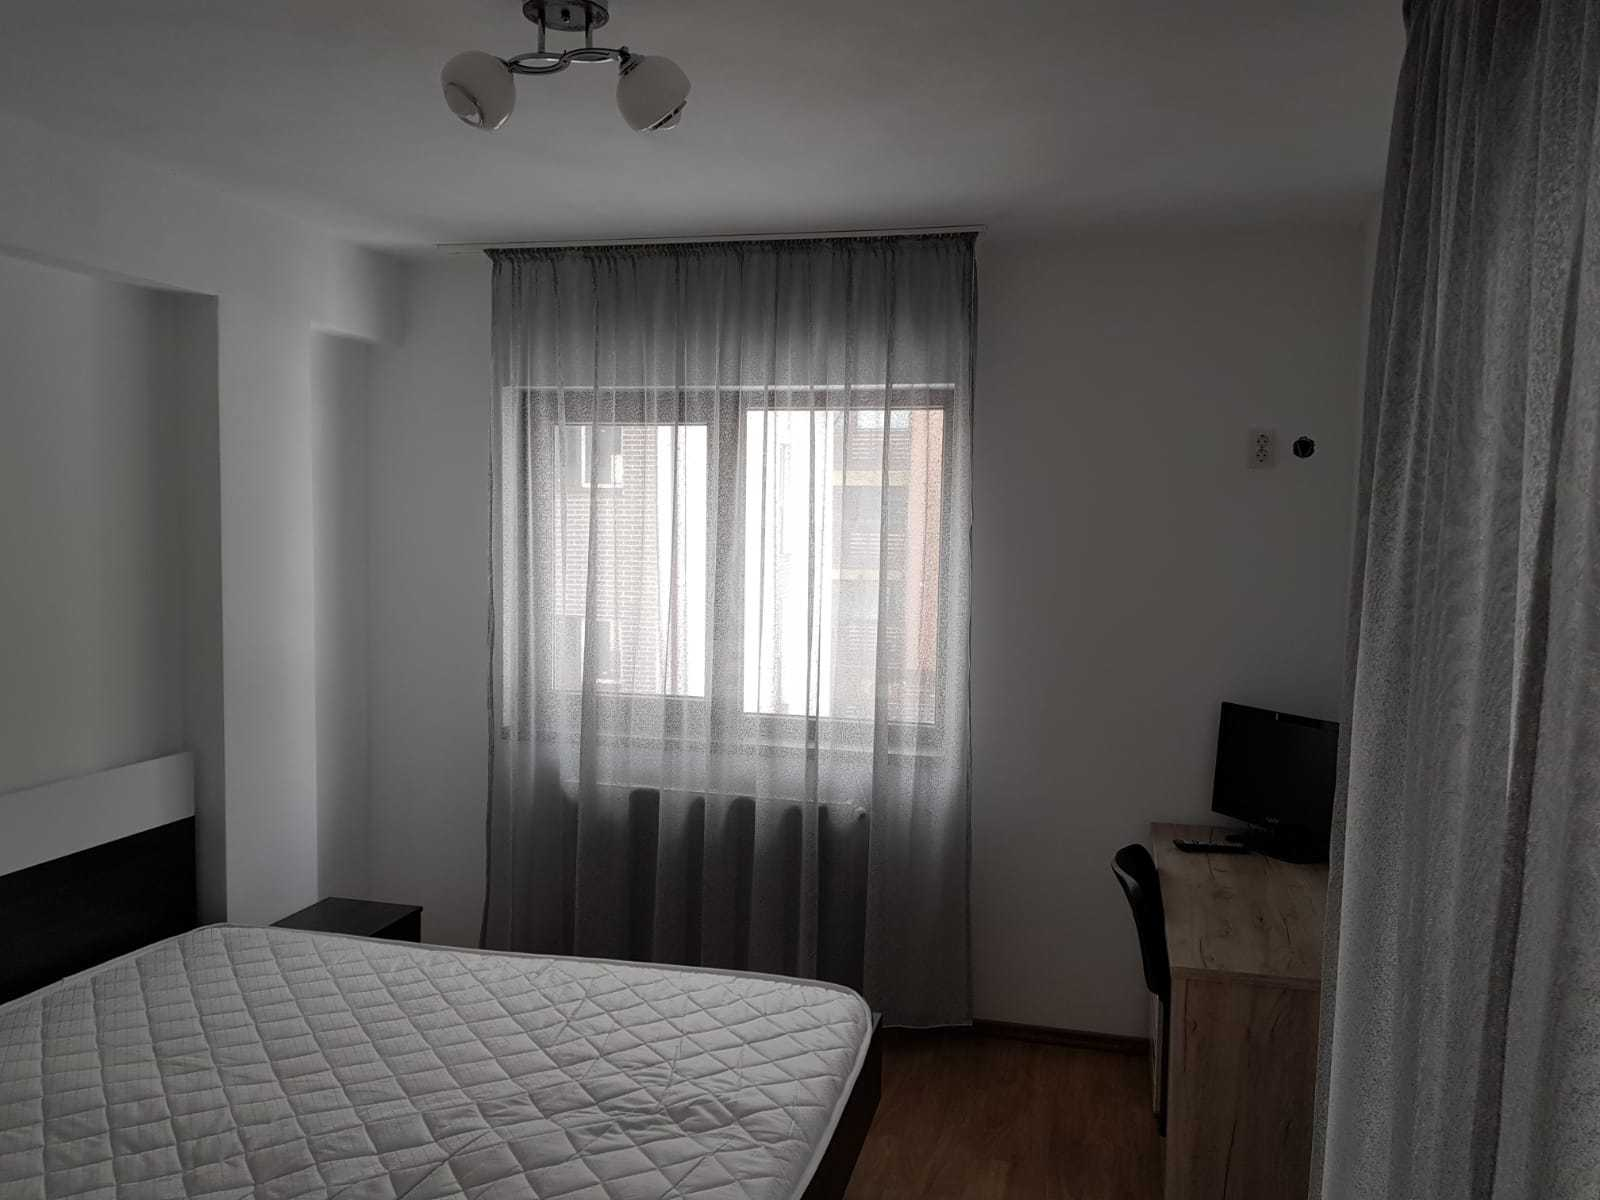 Apartment for rent 3 rooms, APCJ232650FLO-18